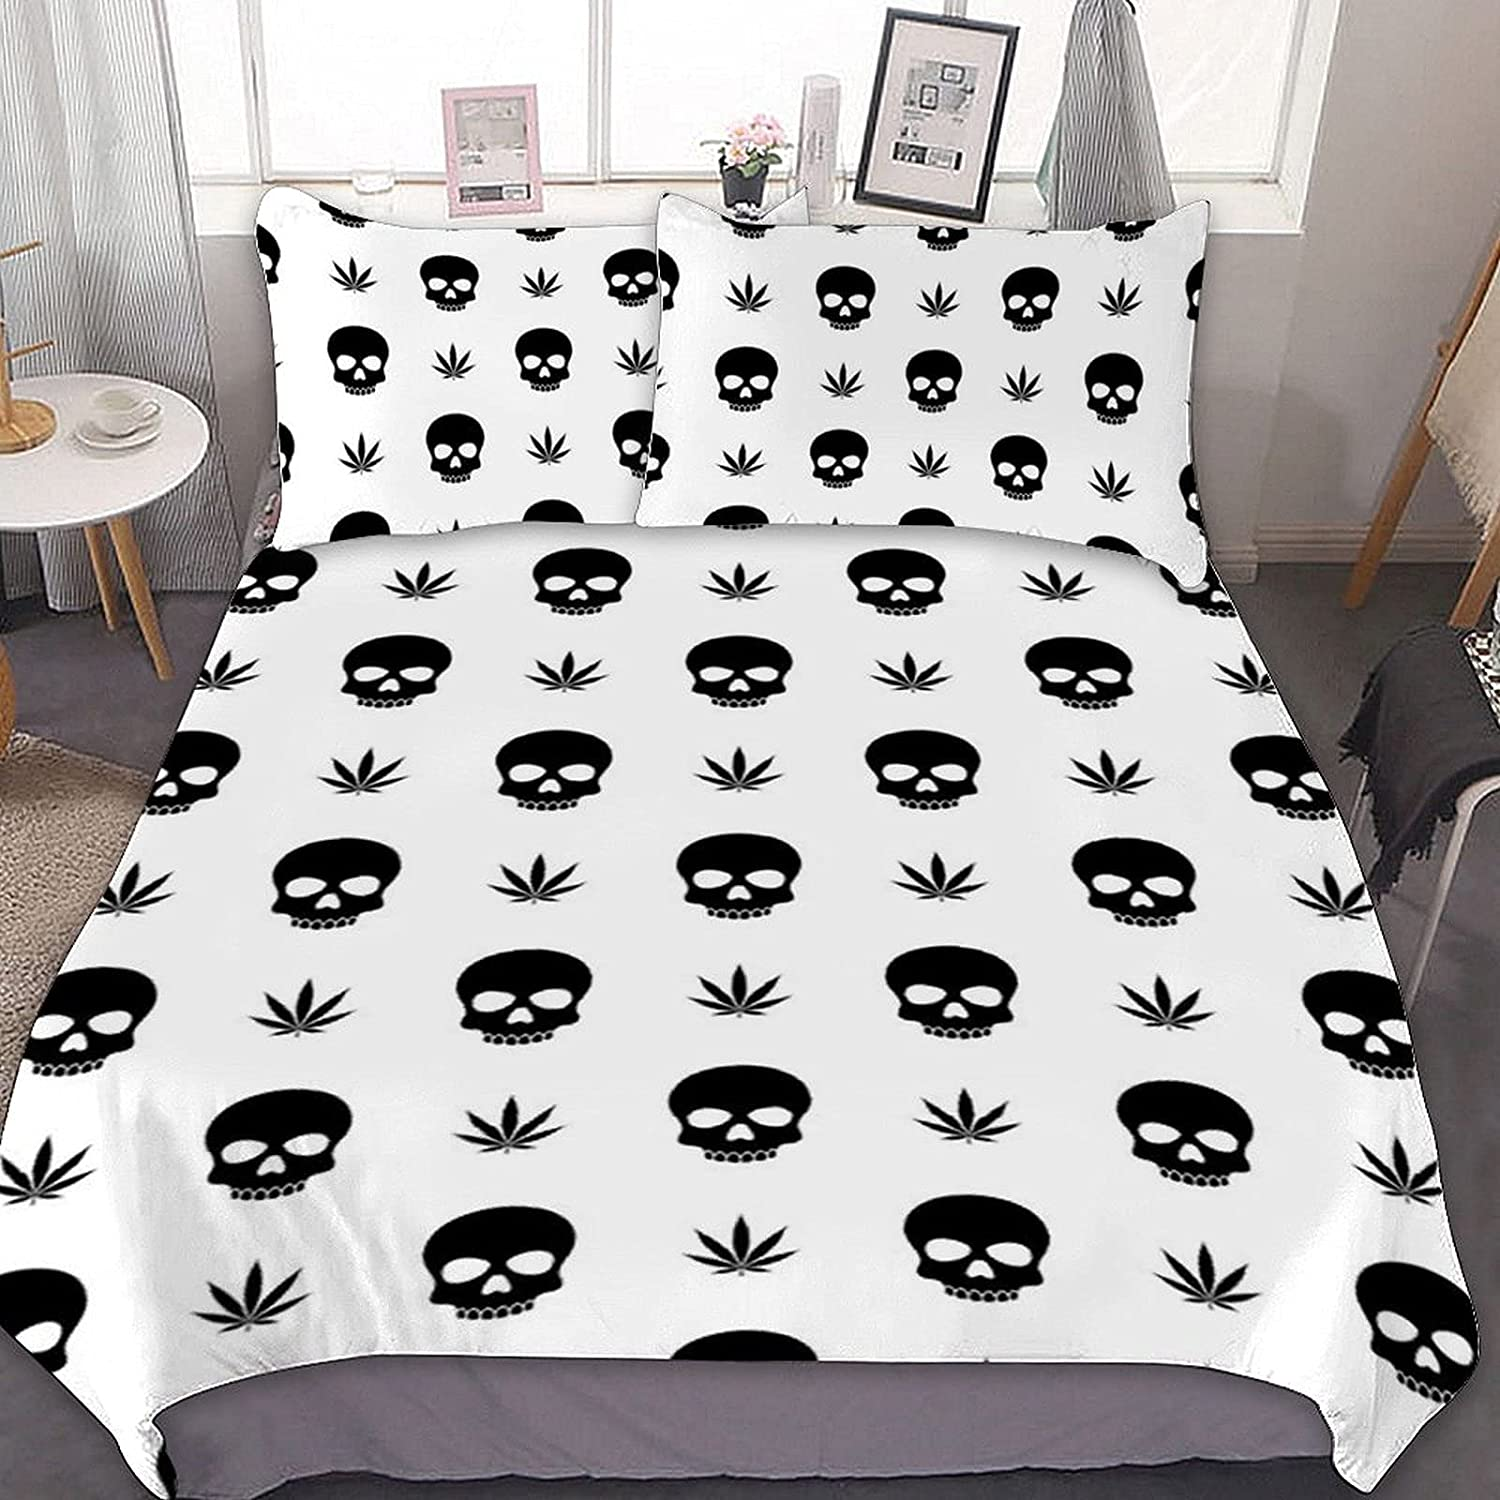 PNNUO 5 ☆ very popular Skull and Weeds Queen OFFicial mail order Bed Twin Size Comforte Full King Set